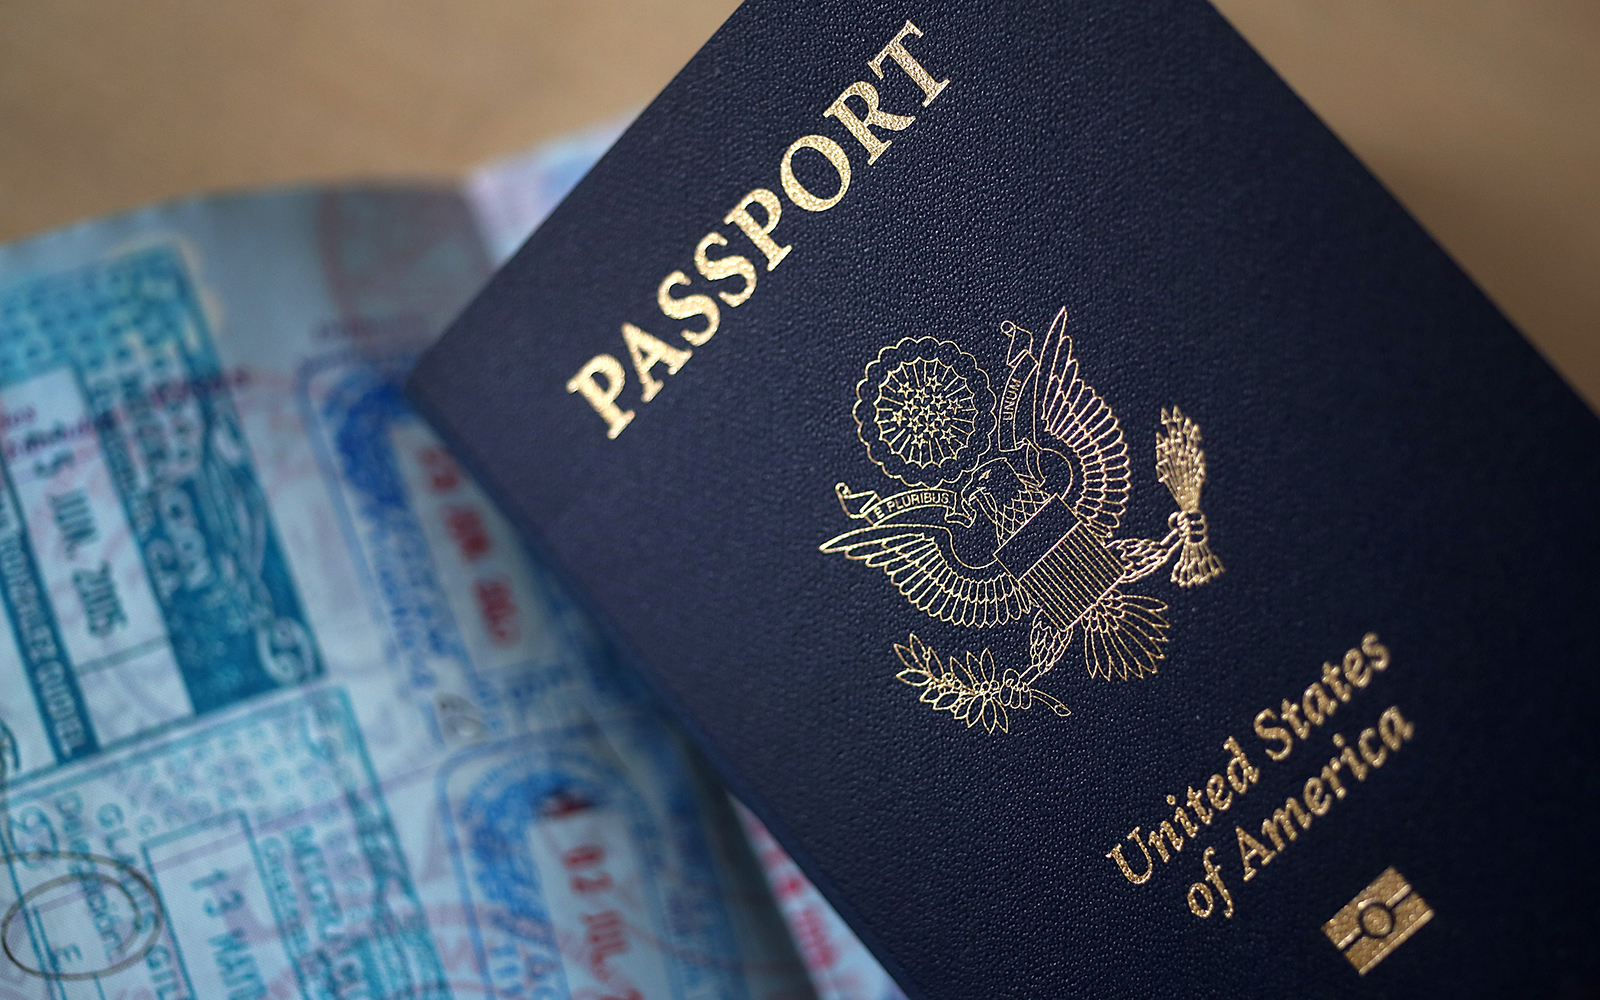 How to Get Two Passports (Legally)